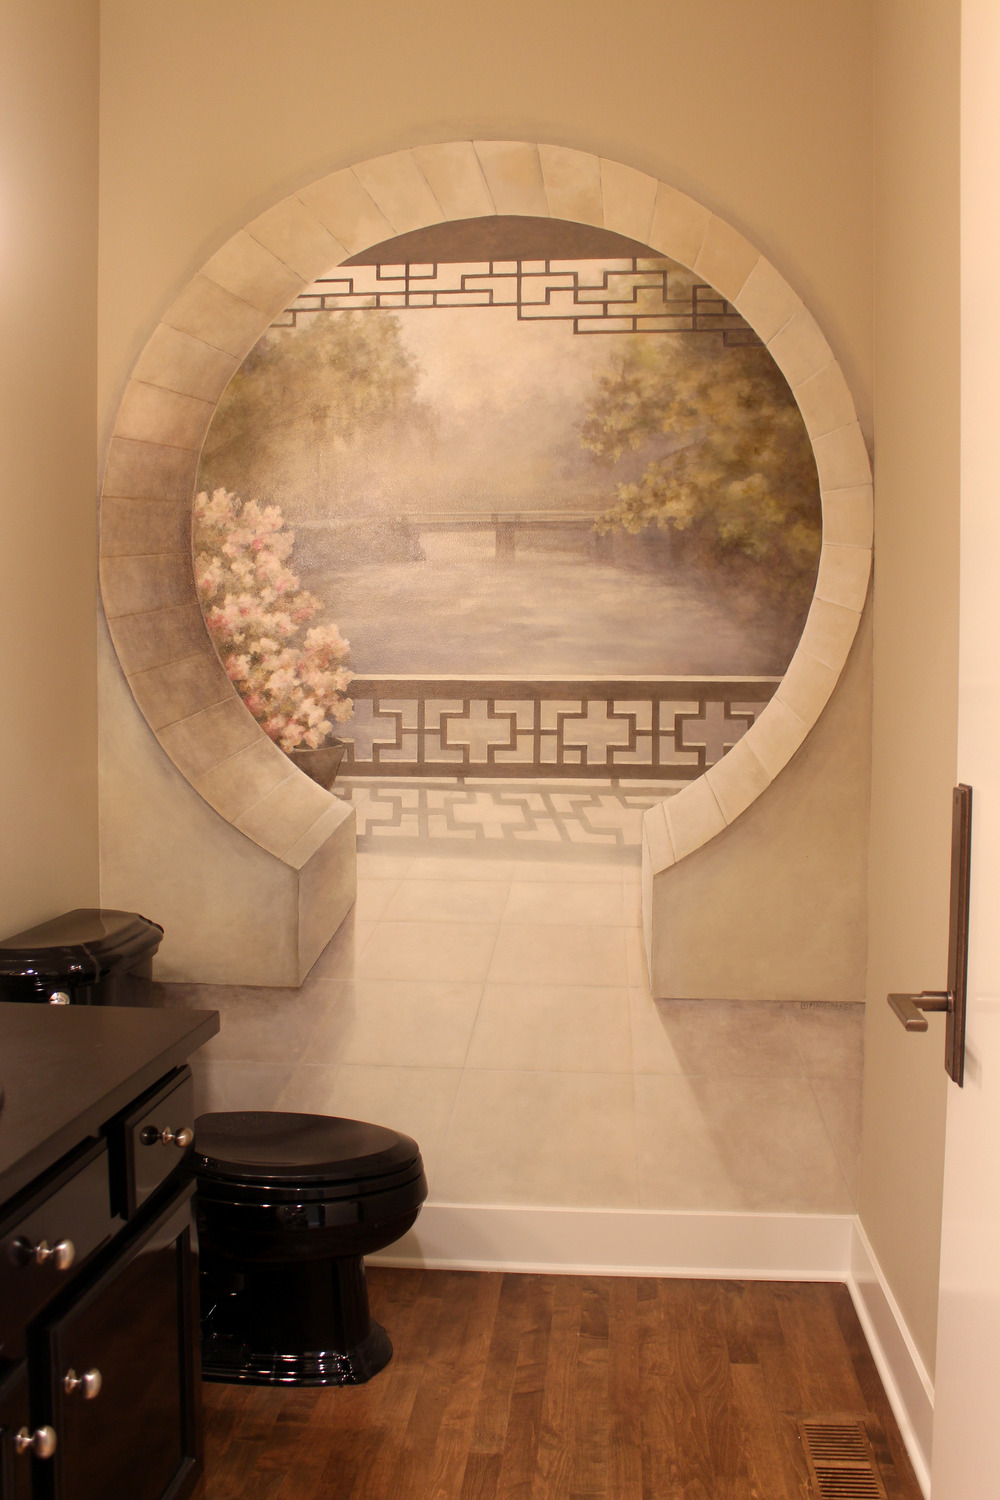 This project took me 4 days to complete and, as you can see from the photo, is located in a guest powder room.